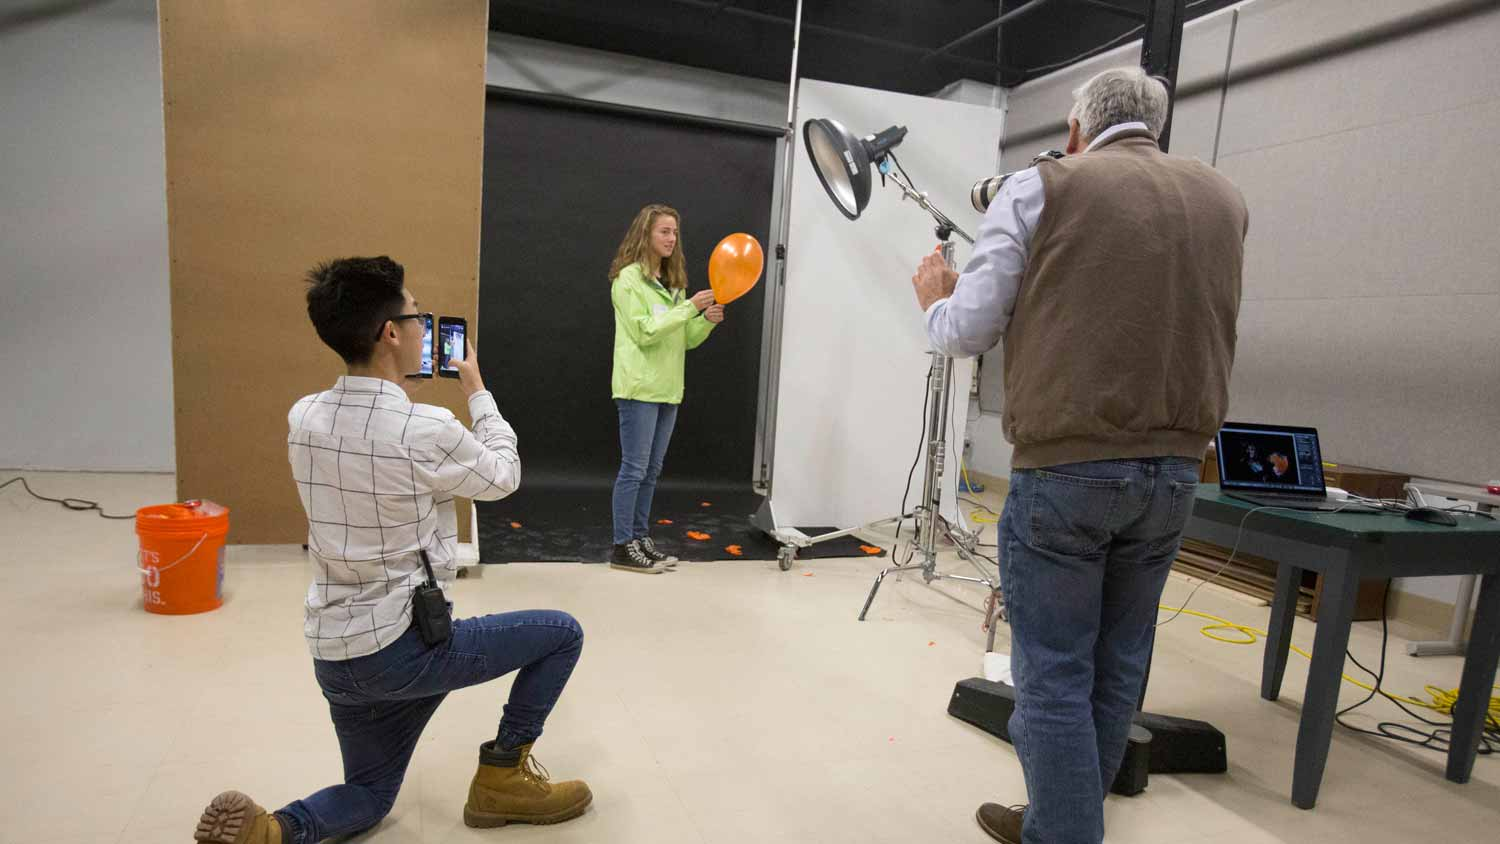 3 people capturing a balloon pop with video equipment